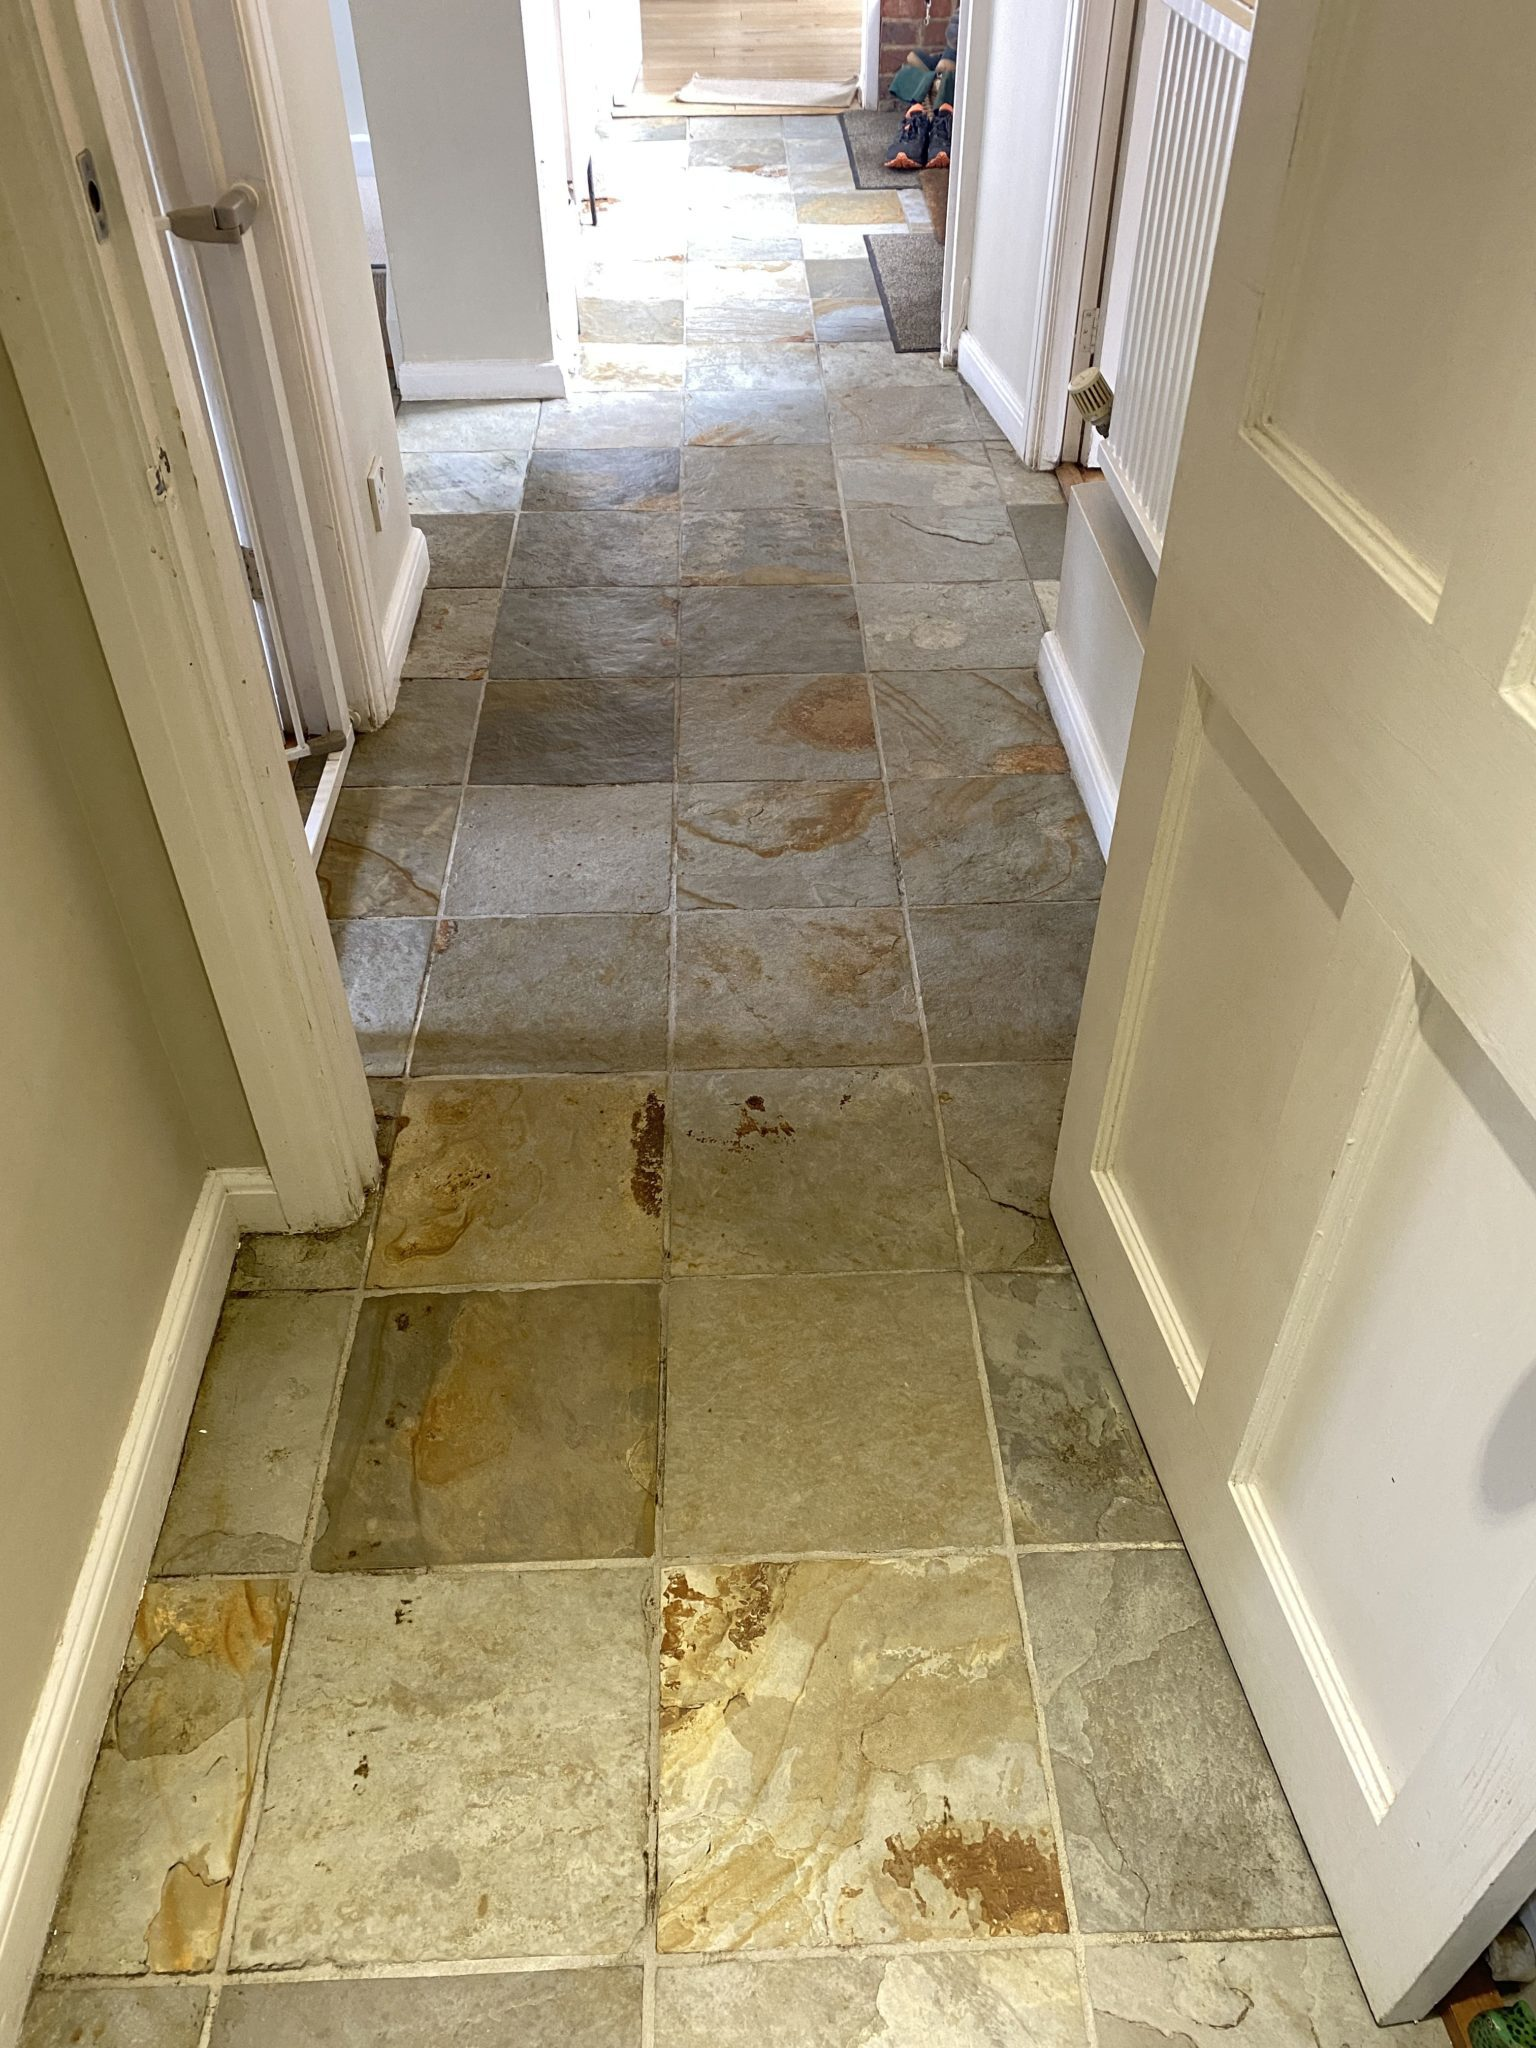 Slate tiles that have been professionally cleaned